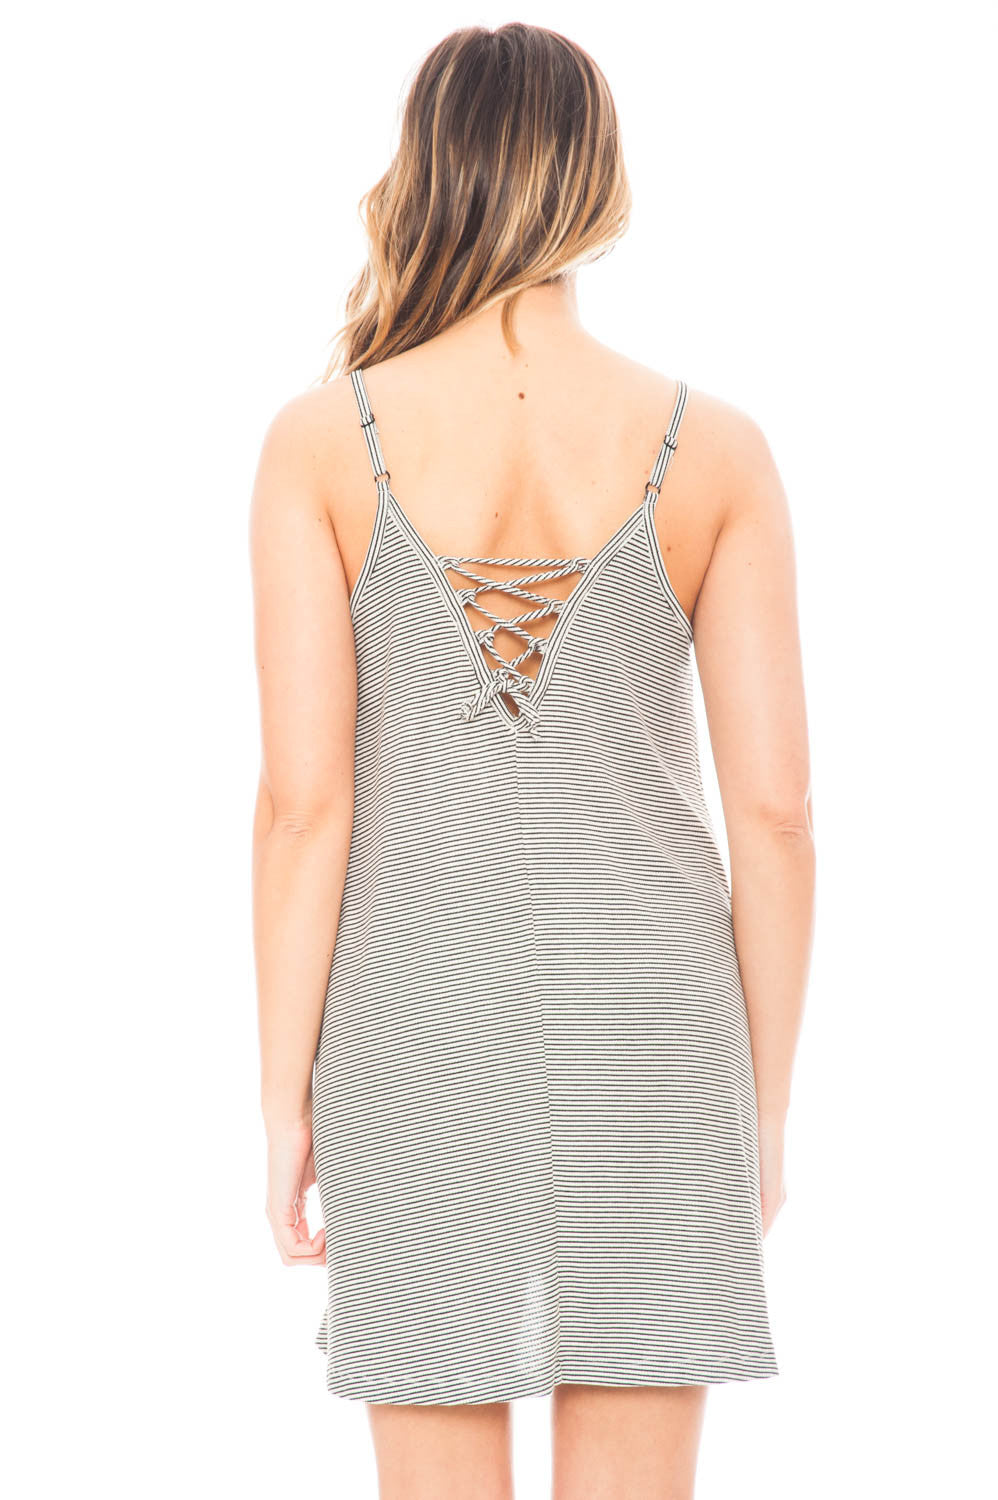 Dress - Striped Spaghetti Strap Dress with a Lace Up Back